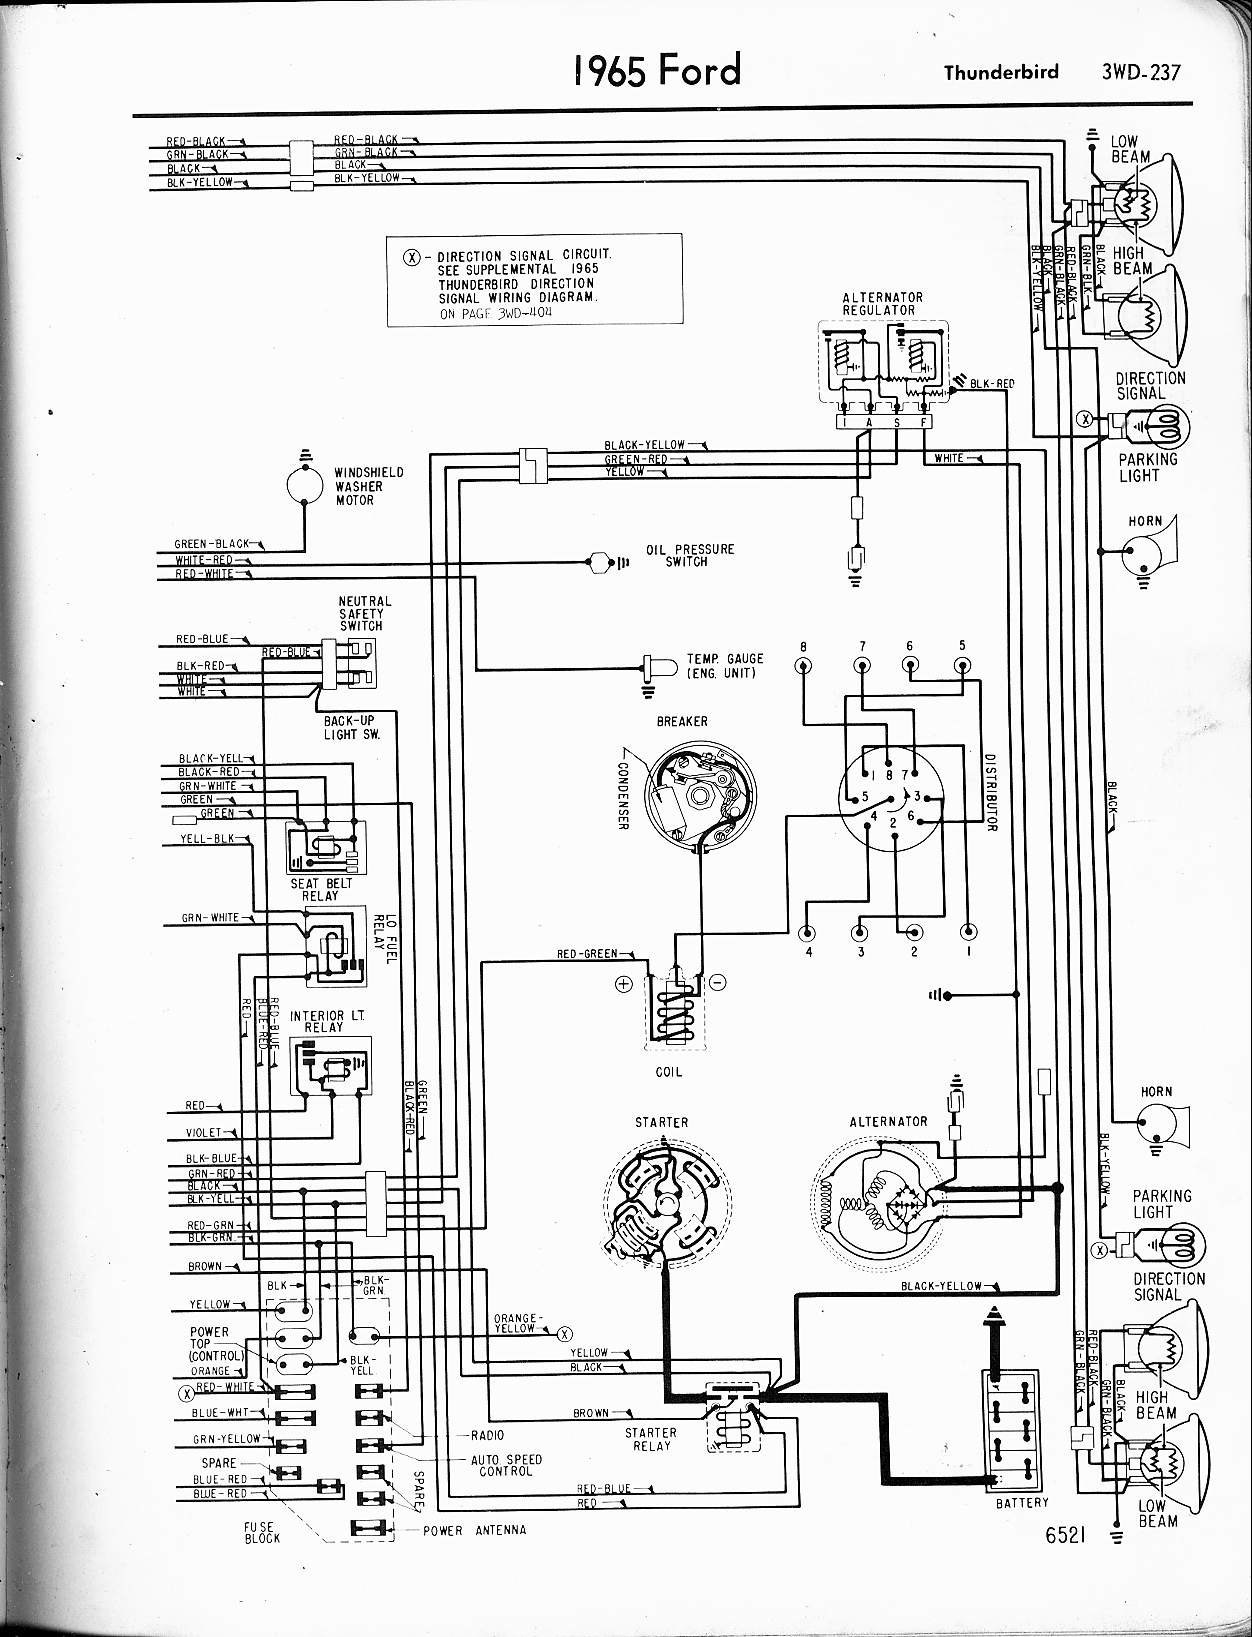 buck stove blower wiring diagram Download-57 65 ford wiring diagrams wiring diagram for 1956 thunderbird 1956 Ford Wiring Schematic 2 19-f